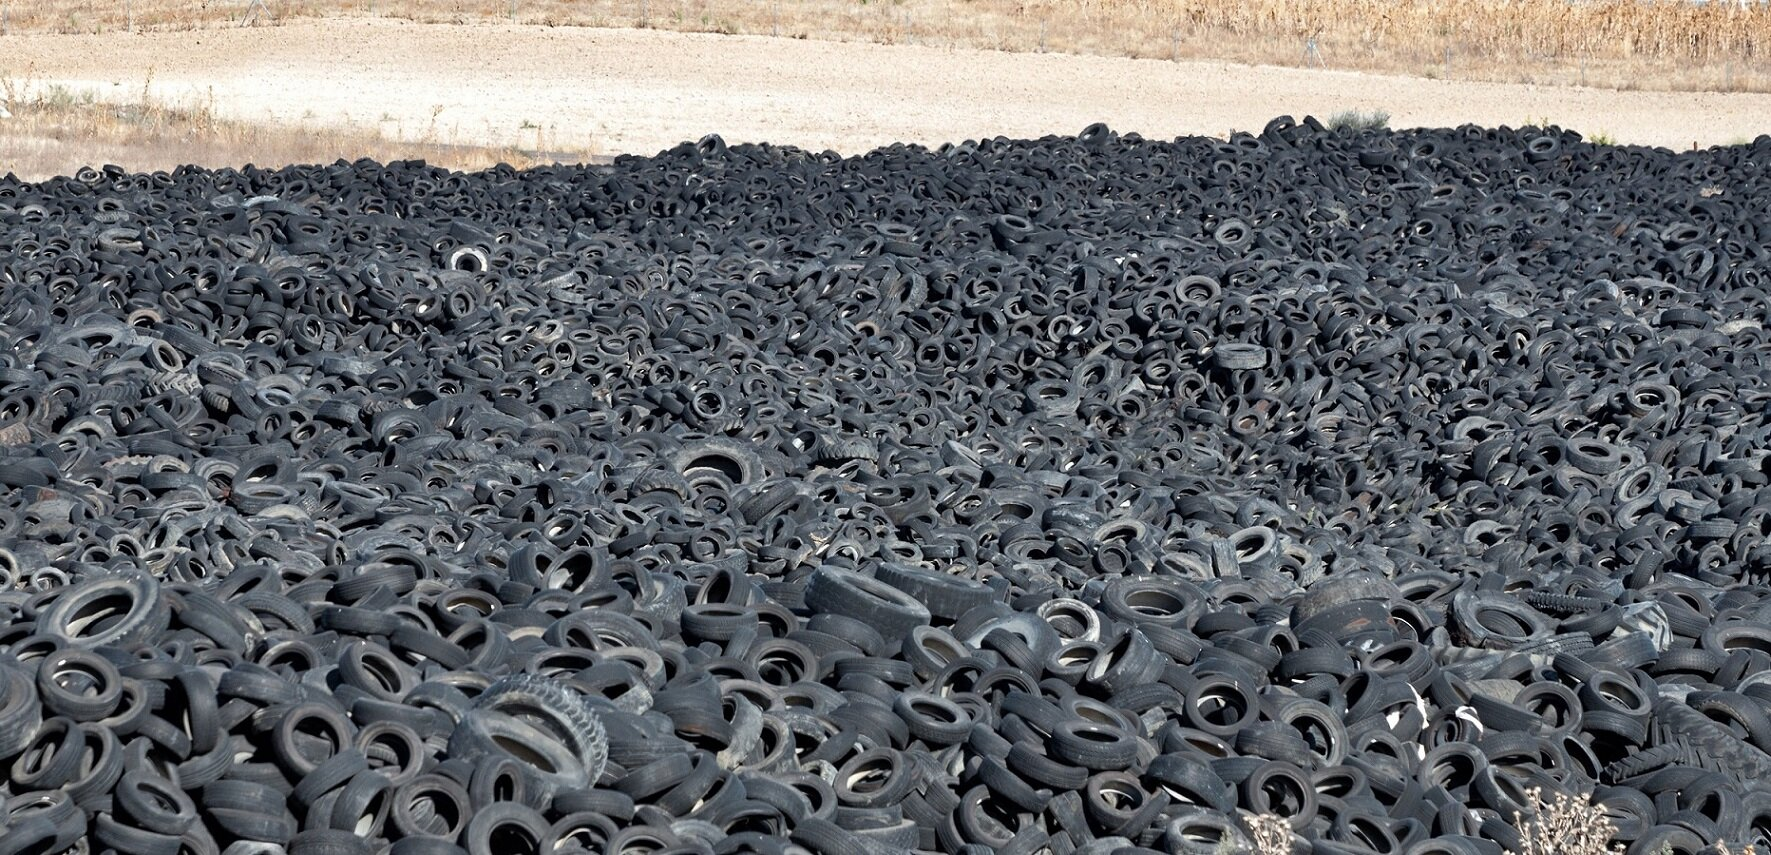 Scientists find a new use for dumped tires: let's turn them into graphene to reinforce concrete